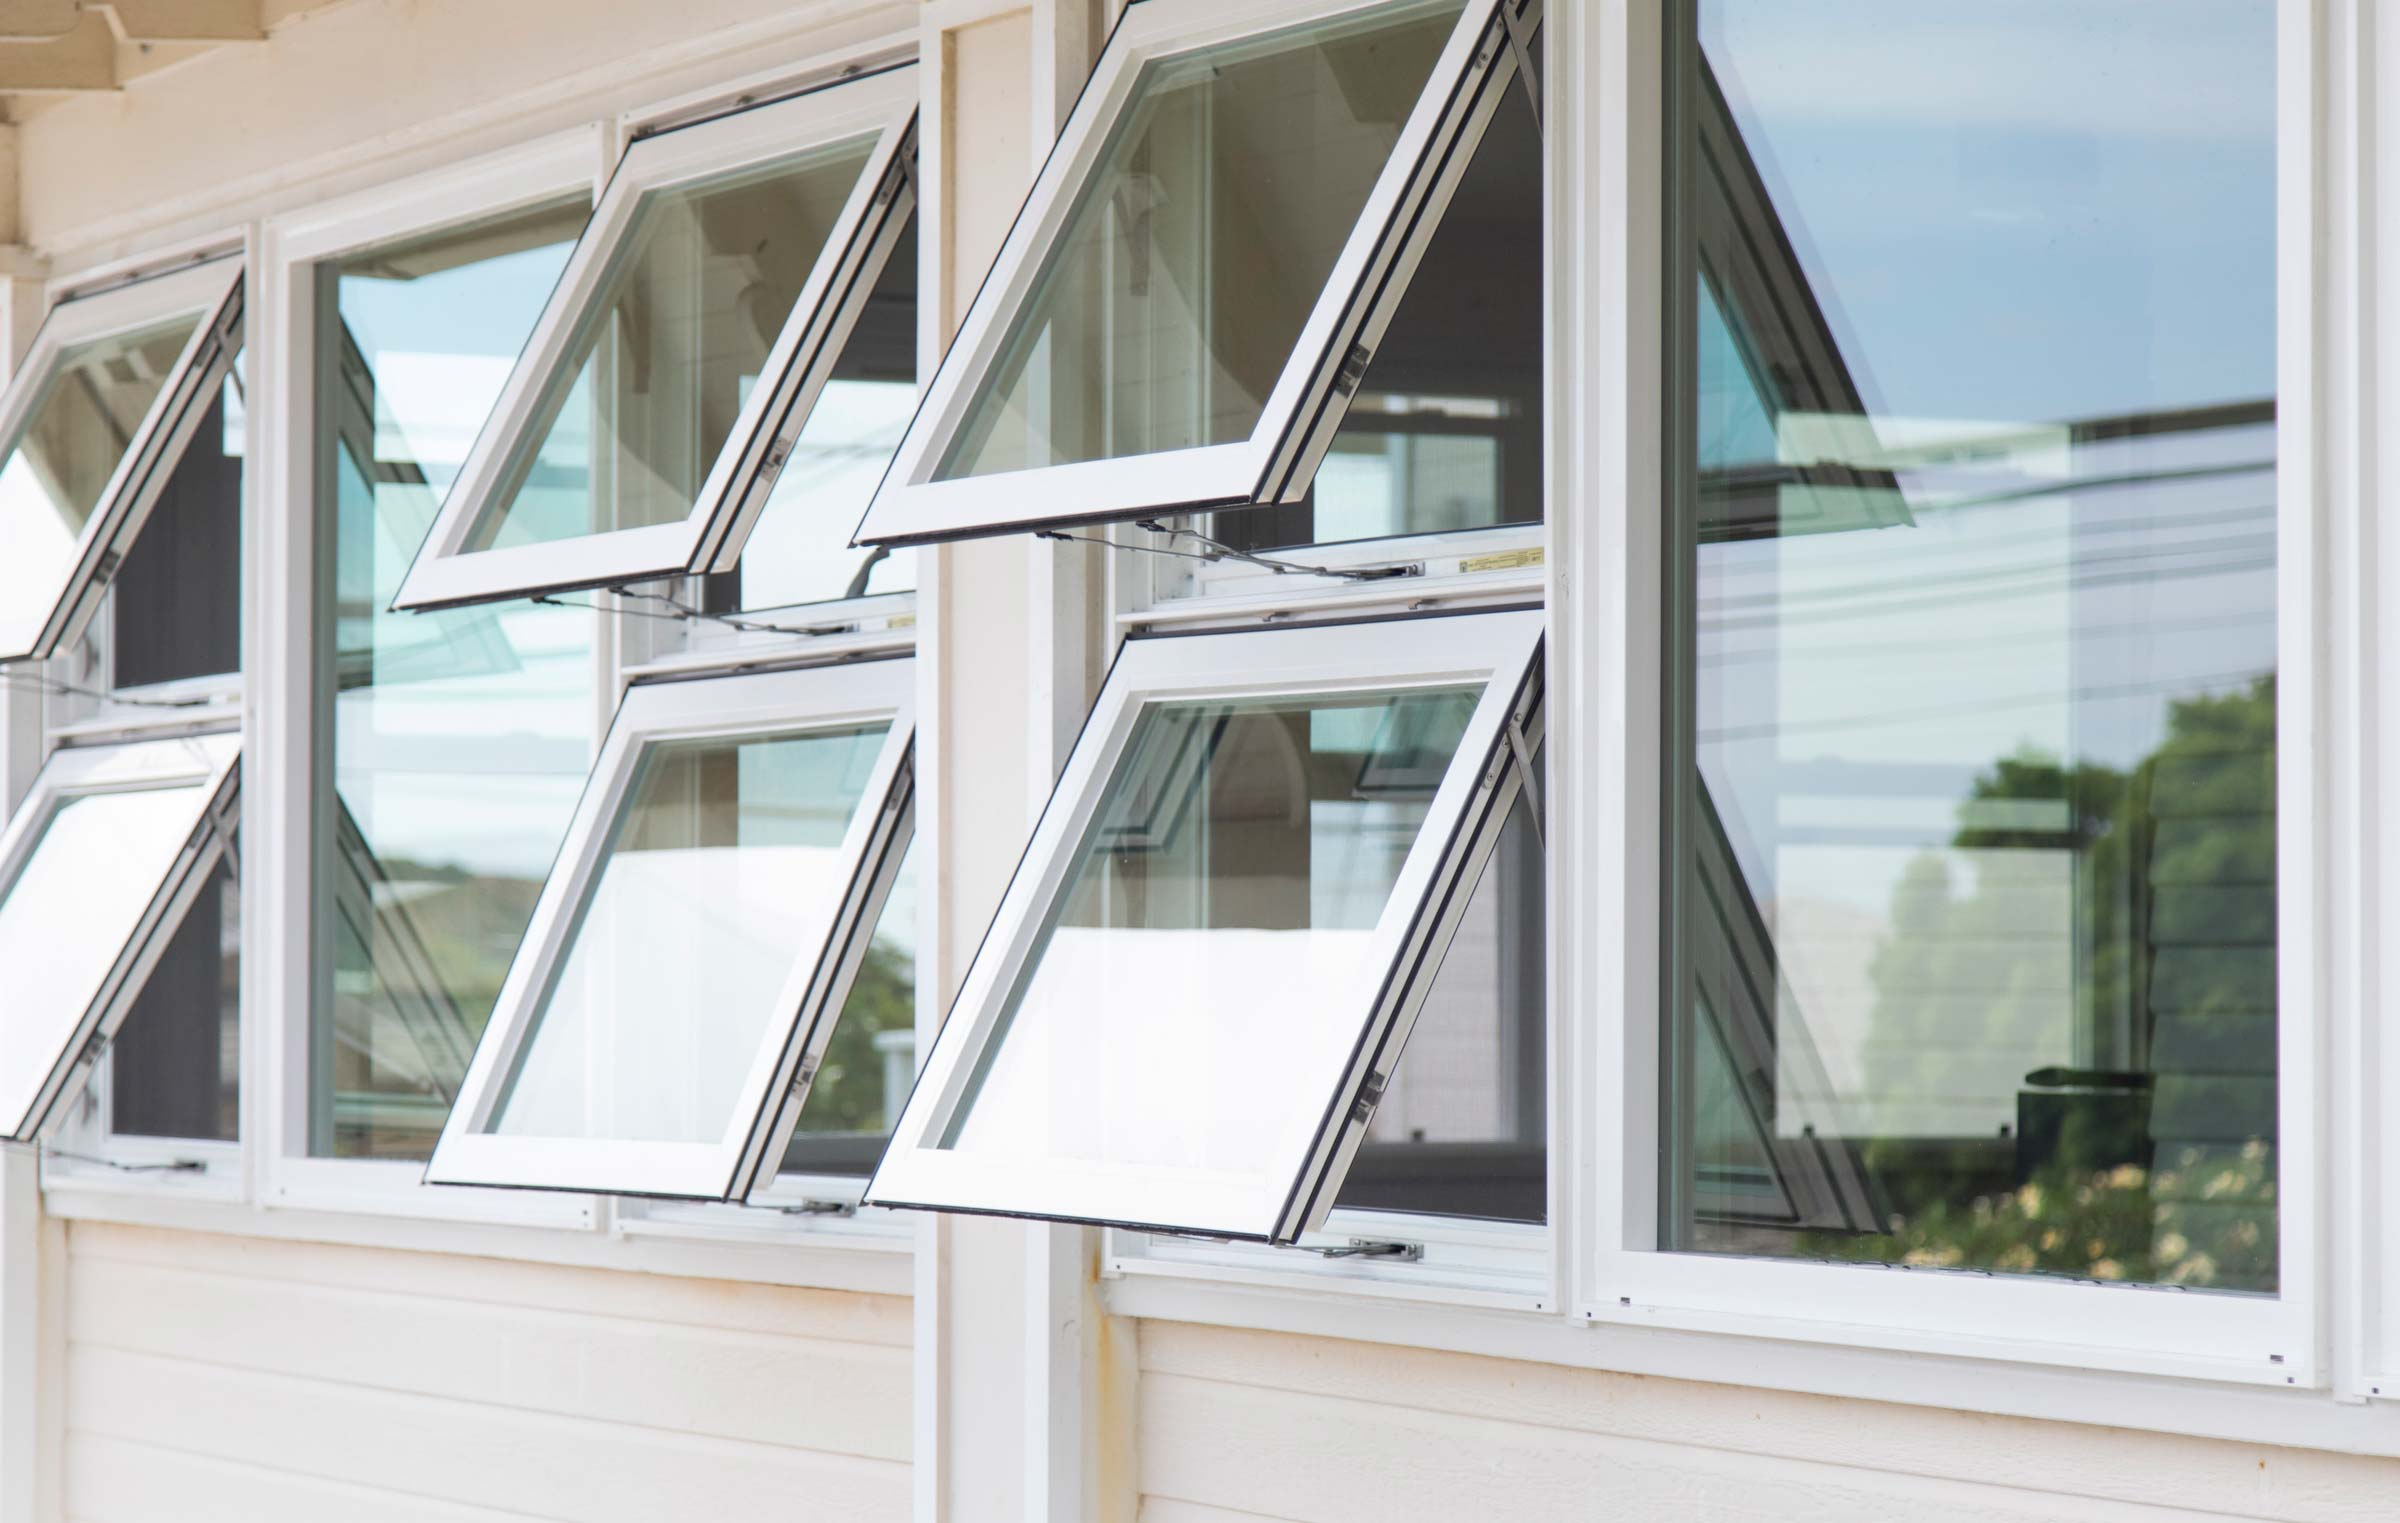 Vinyl Awning Windows from Island Windows and Doors